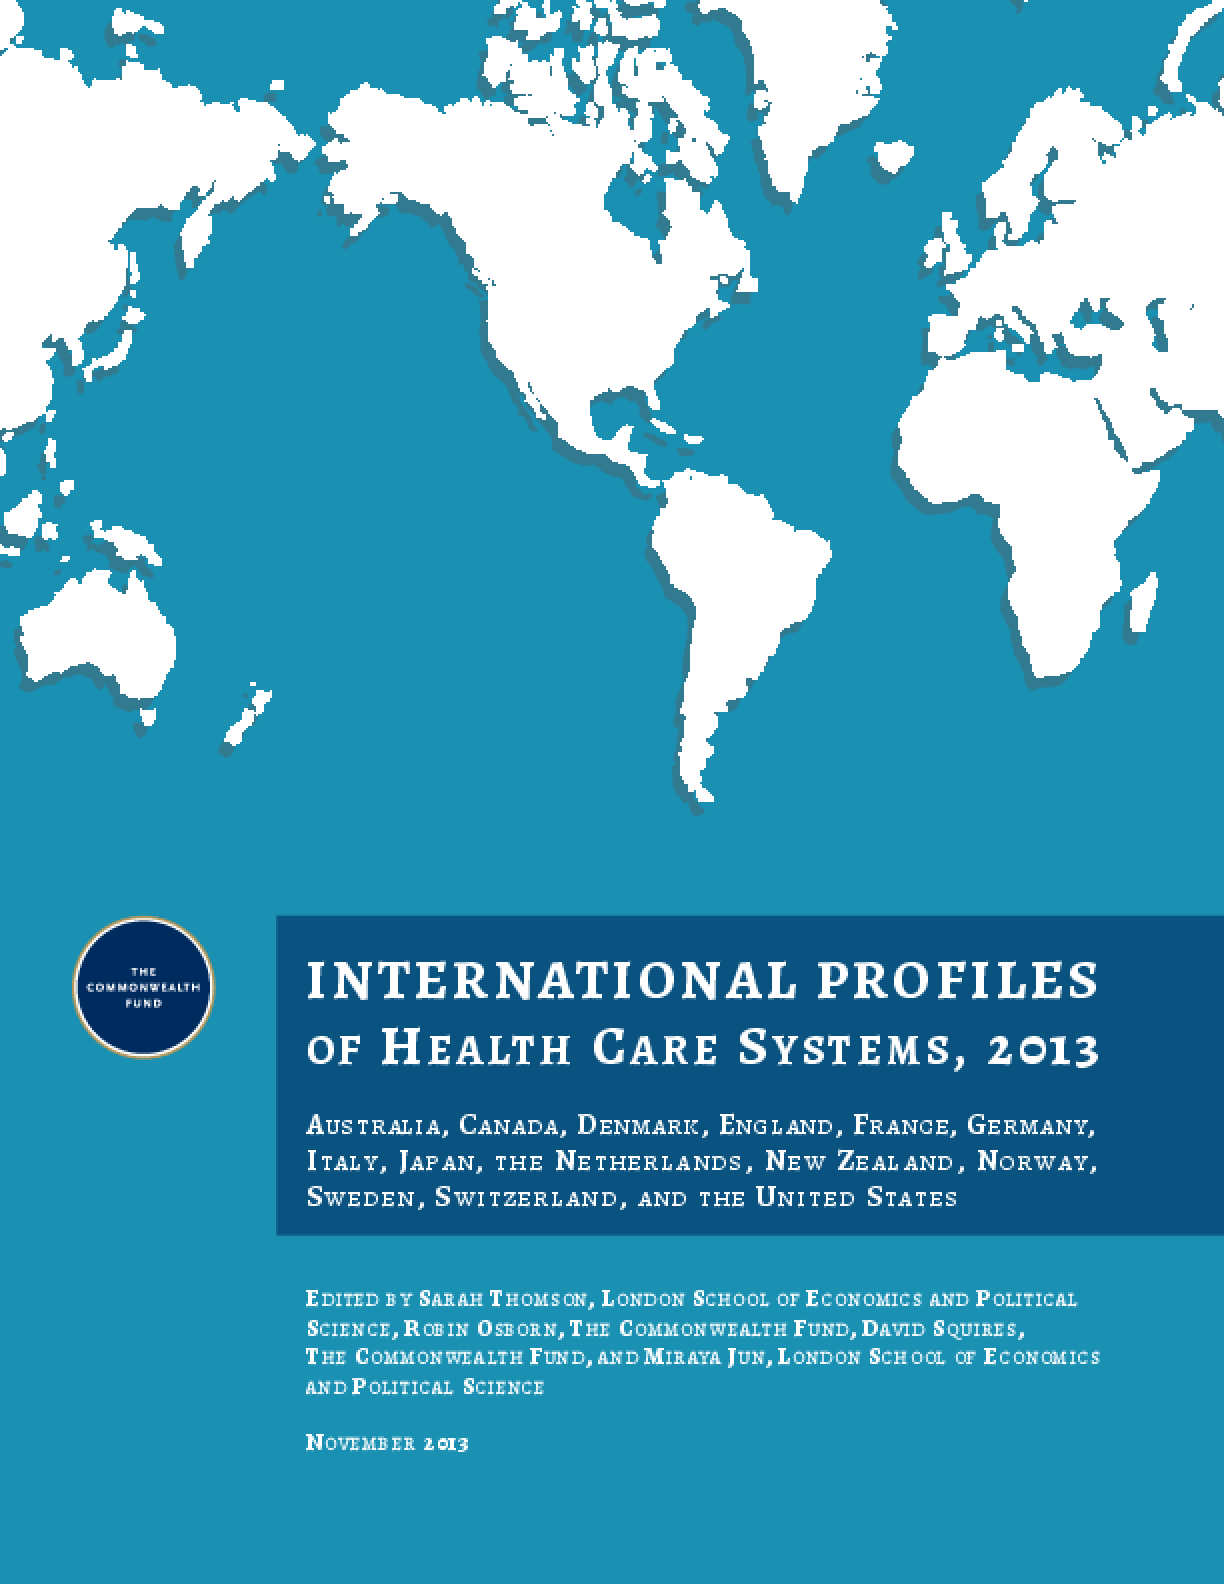 International Profiles of Health Care Systems, 2013